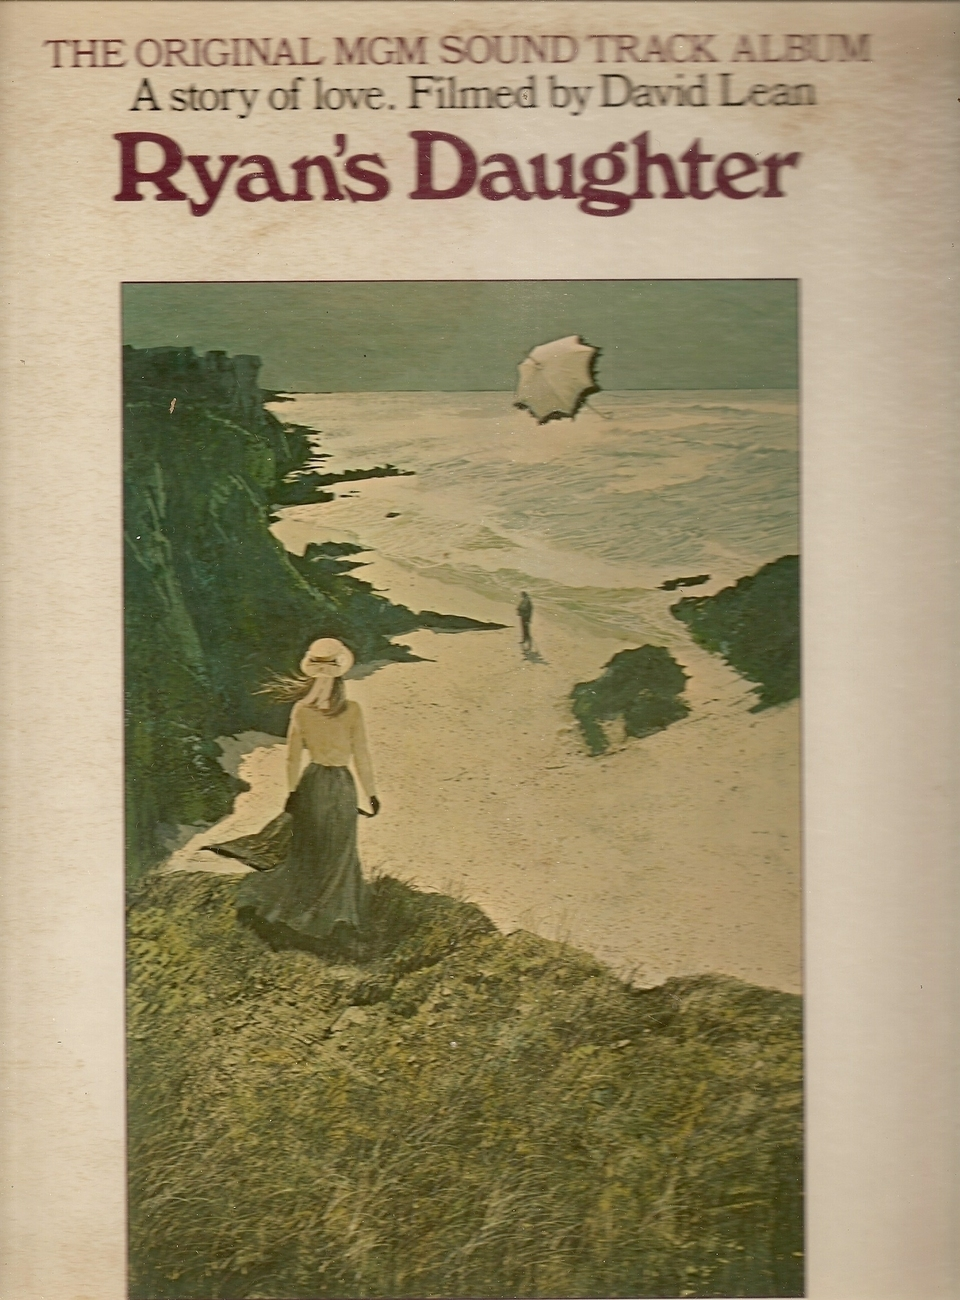 LP--Ryan's Daughter Original Soundtrack